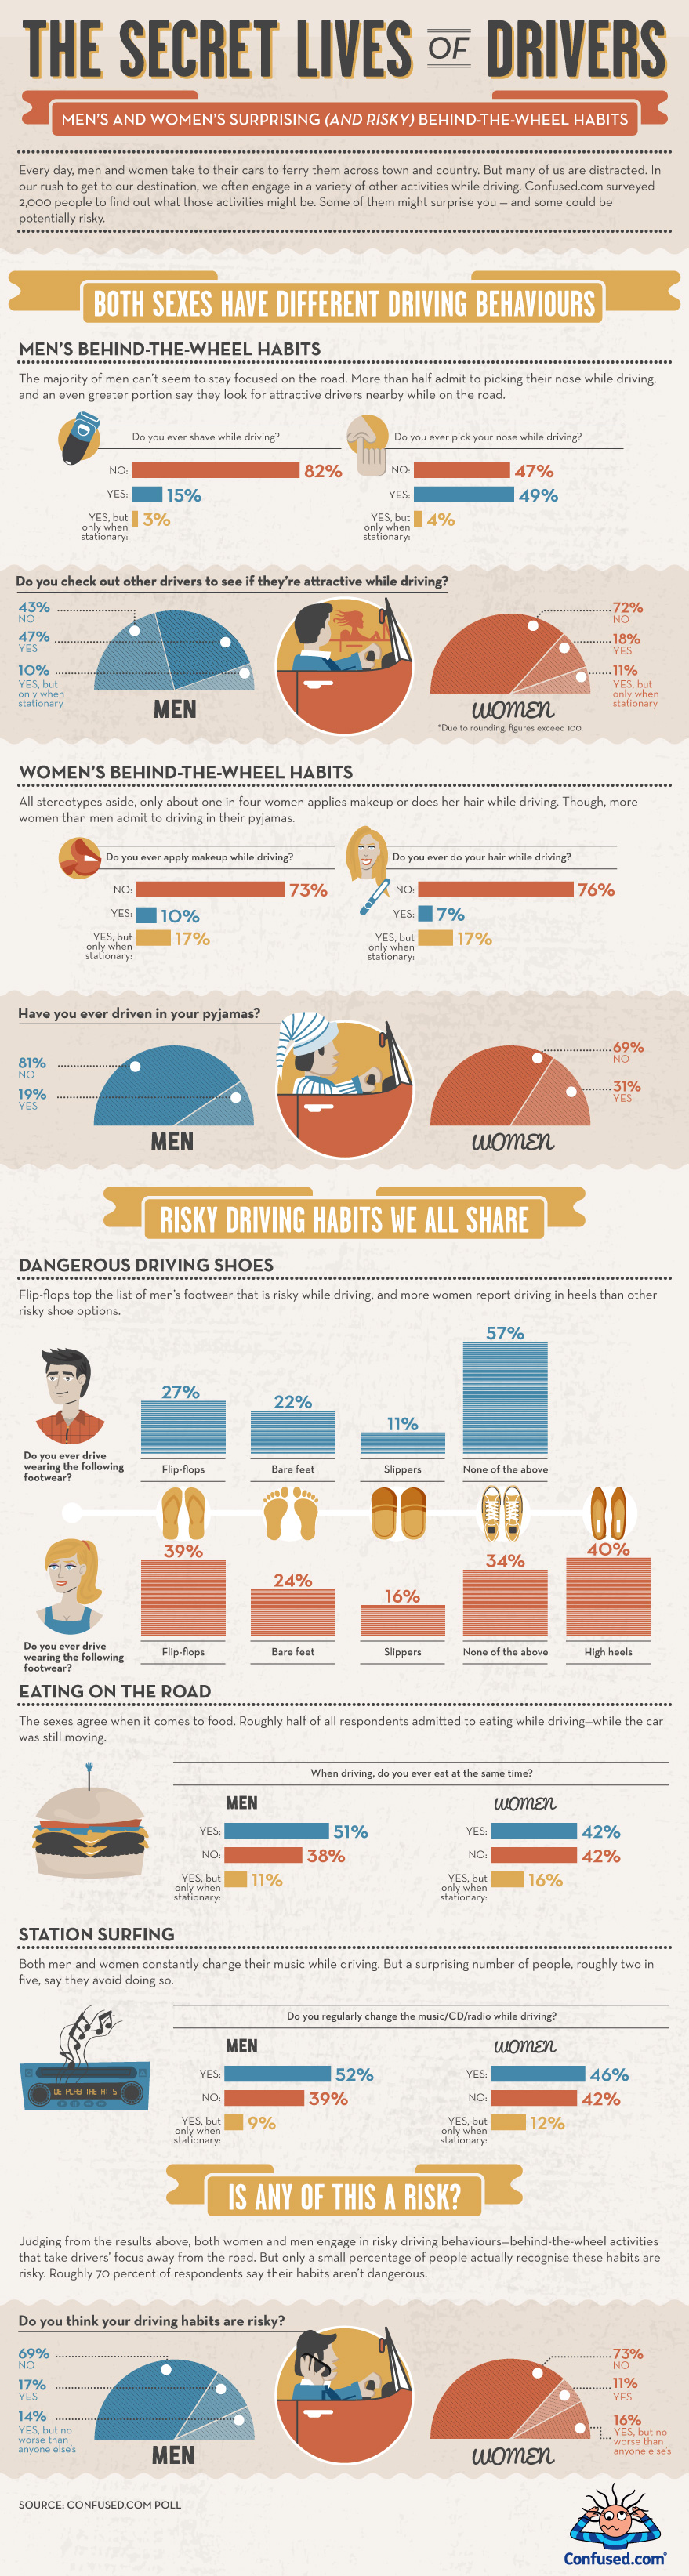 Bad Driving Habits: The Secret Lives of Drivers